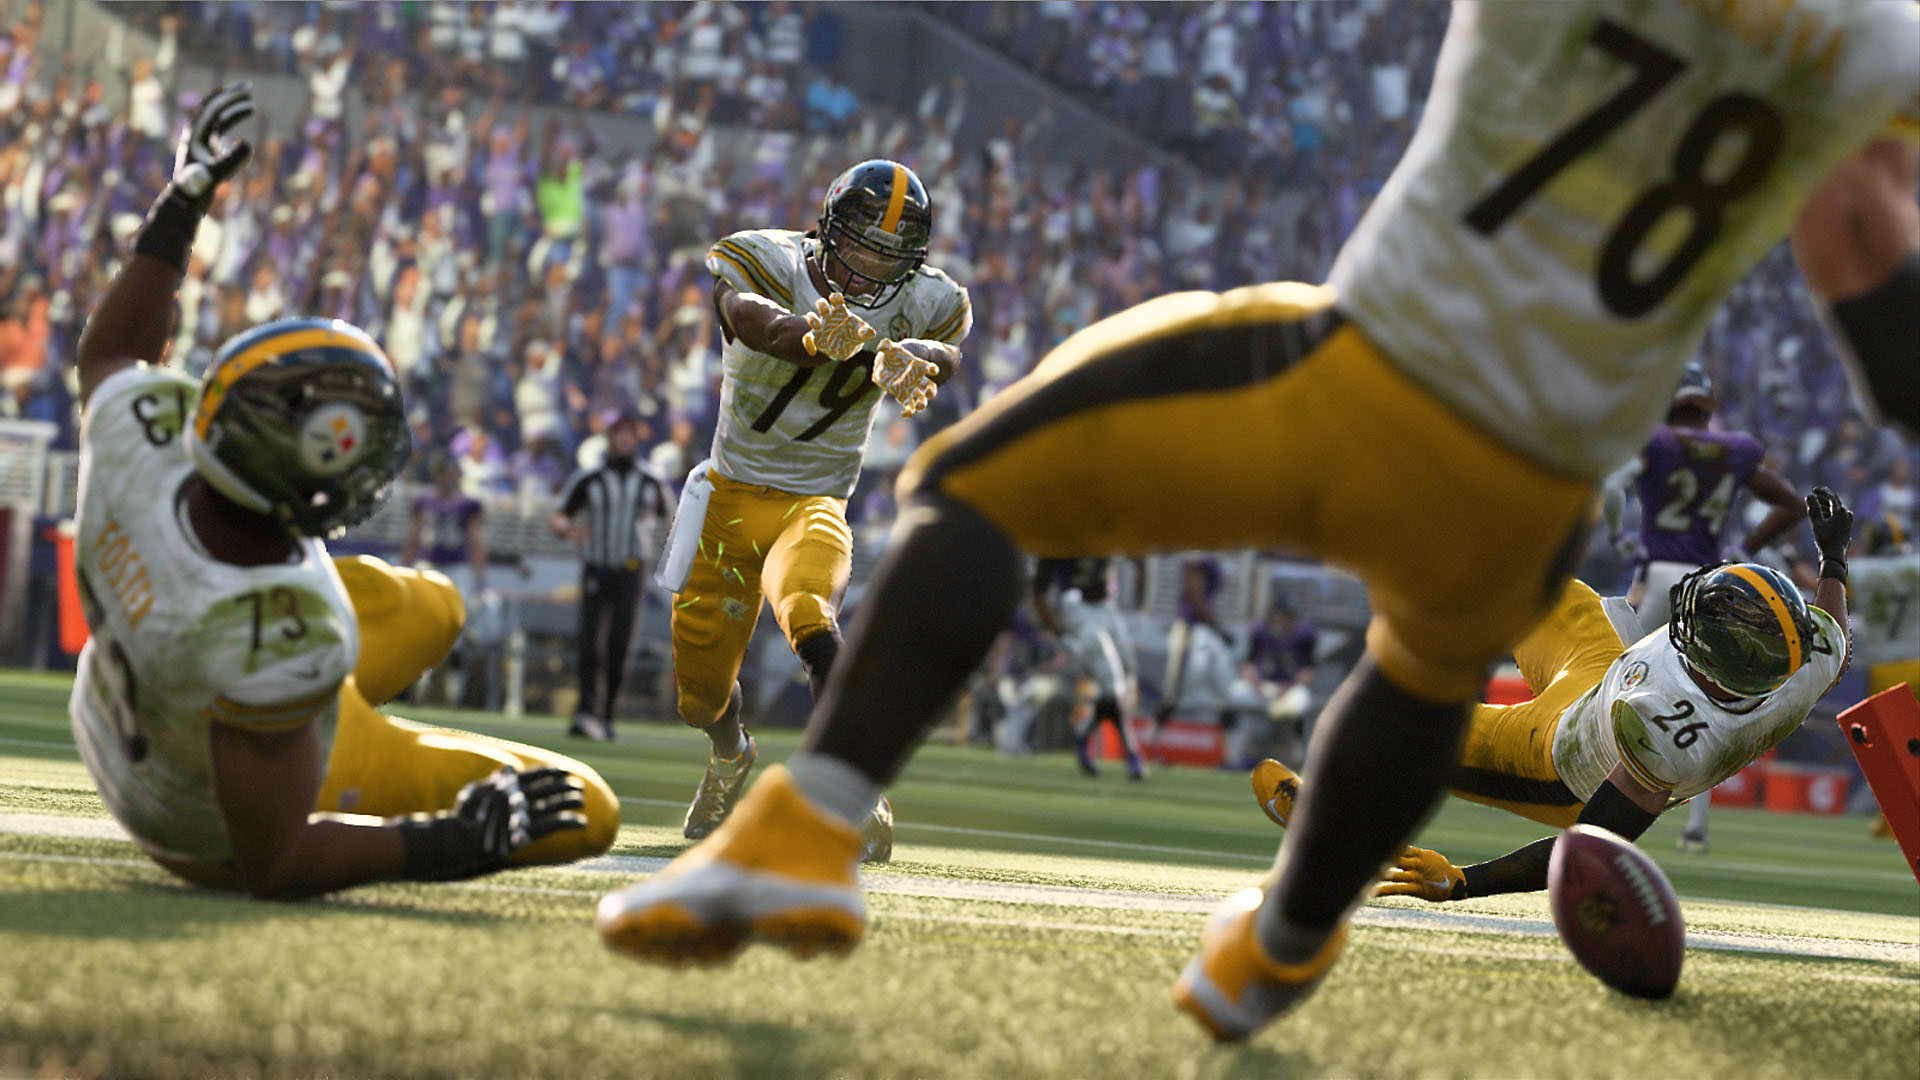 MADDEN NFL 19 screen